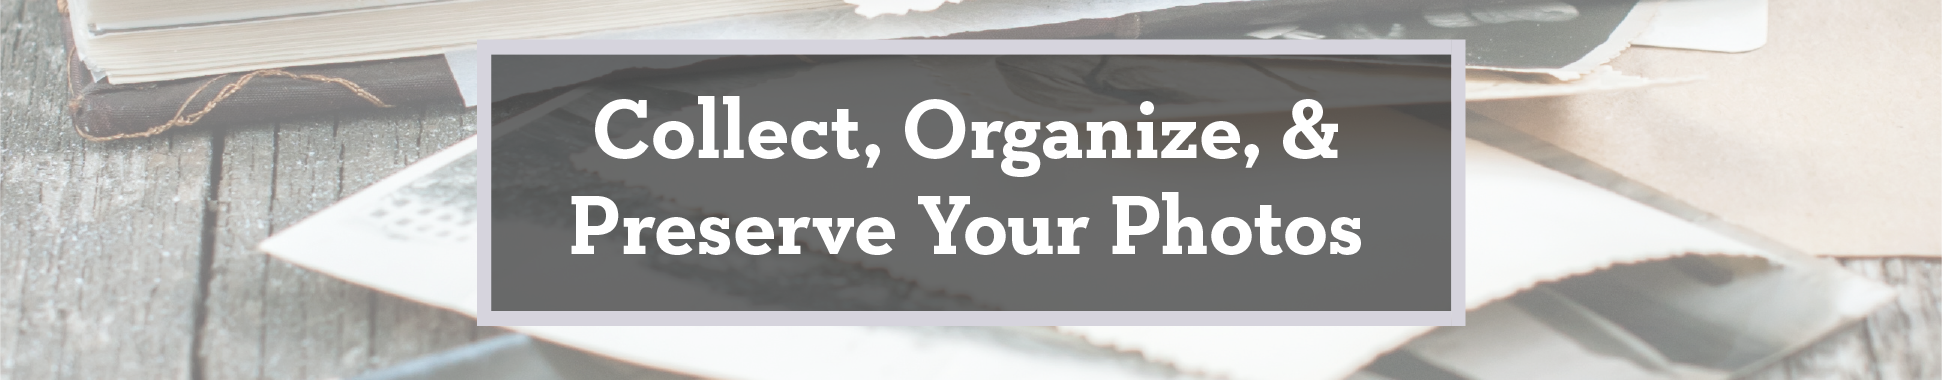 Collect, Organize, and Preserve Your Photos